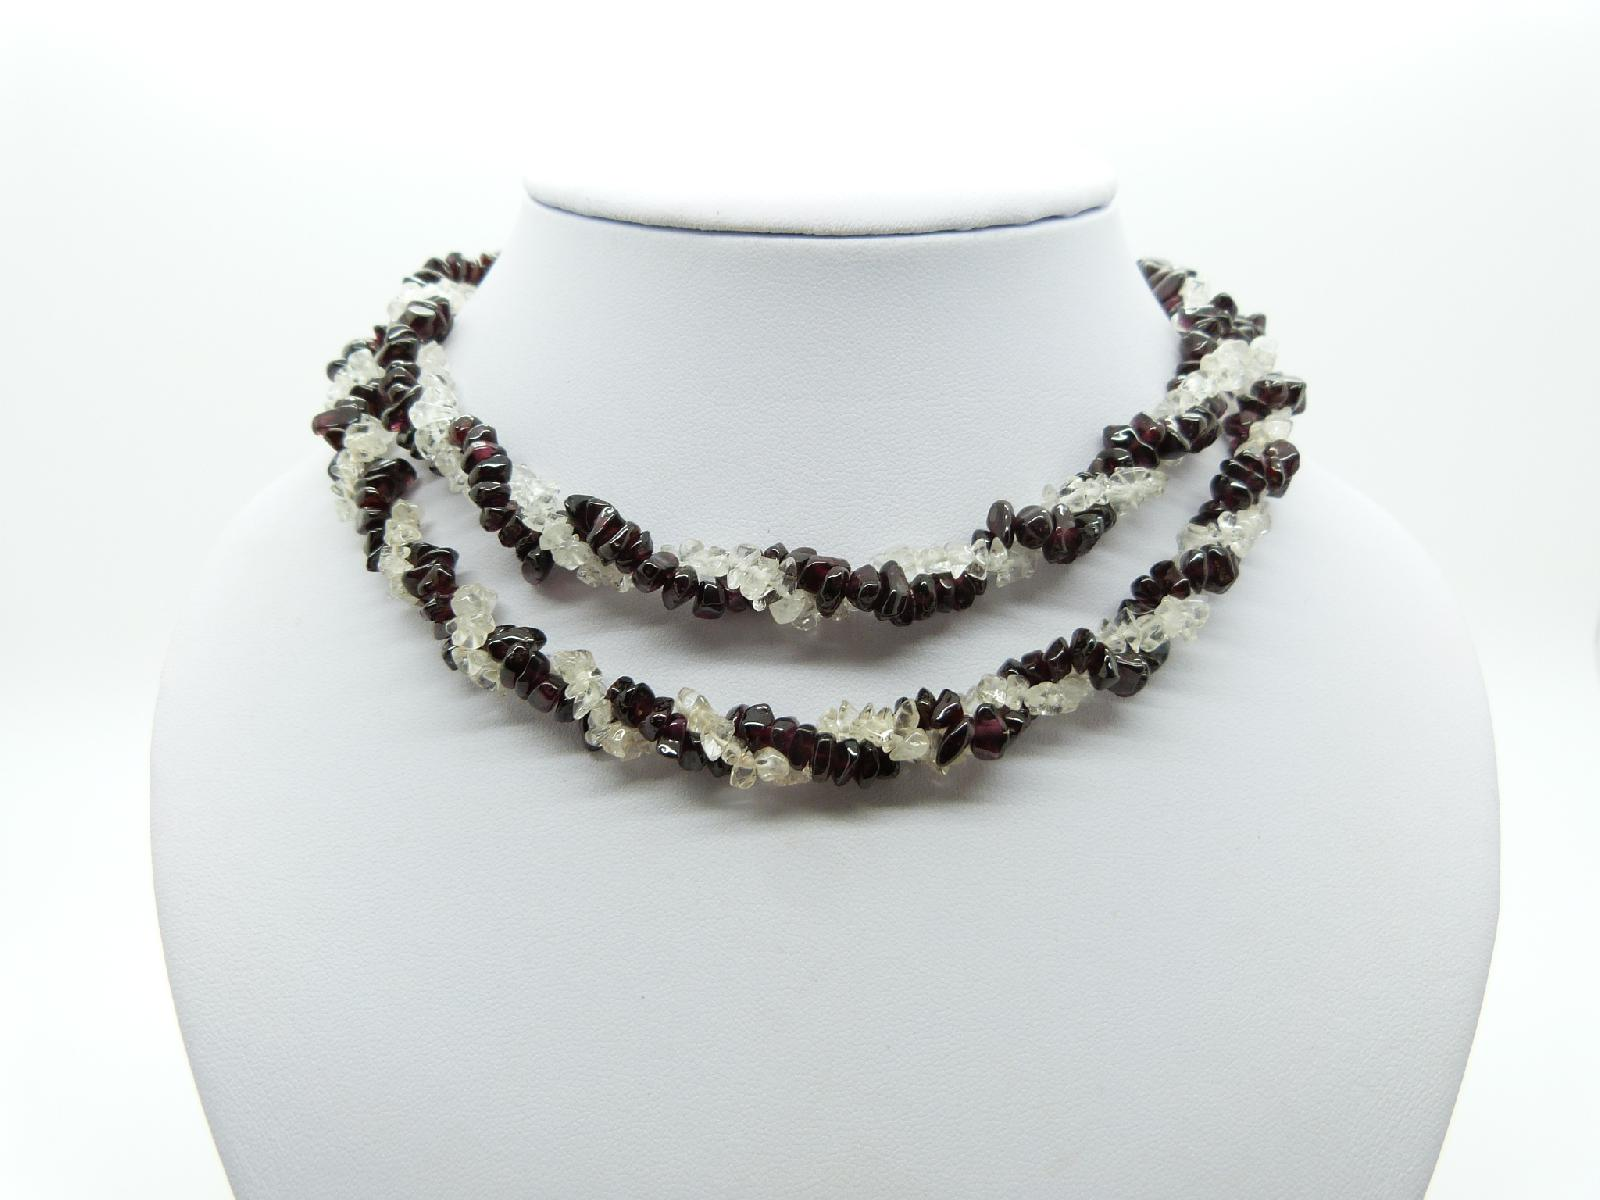 £33.00 - Vintage 80s Real Garnet and White Quartz Bead Two Row Twist Necklace 84cms